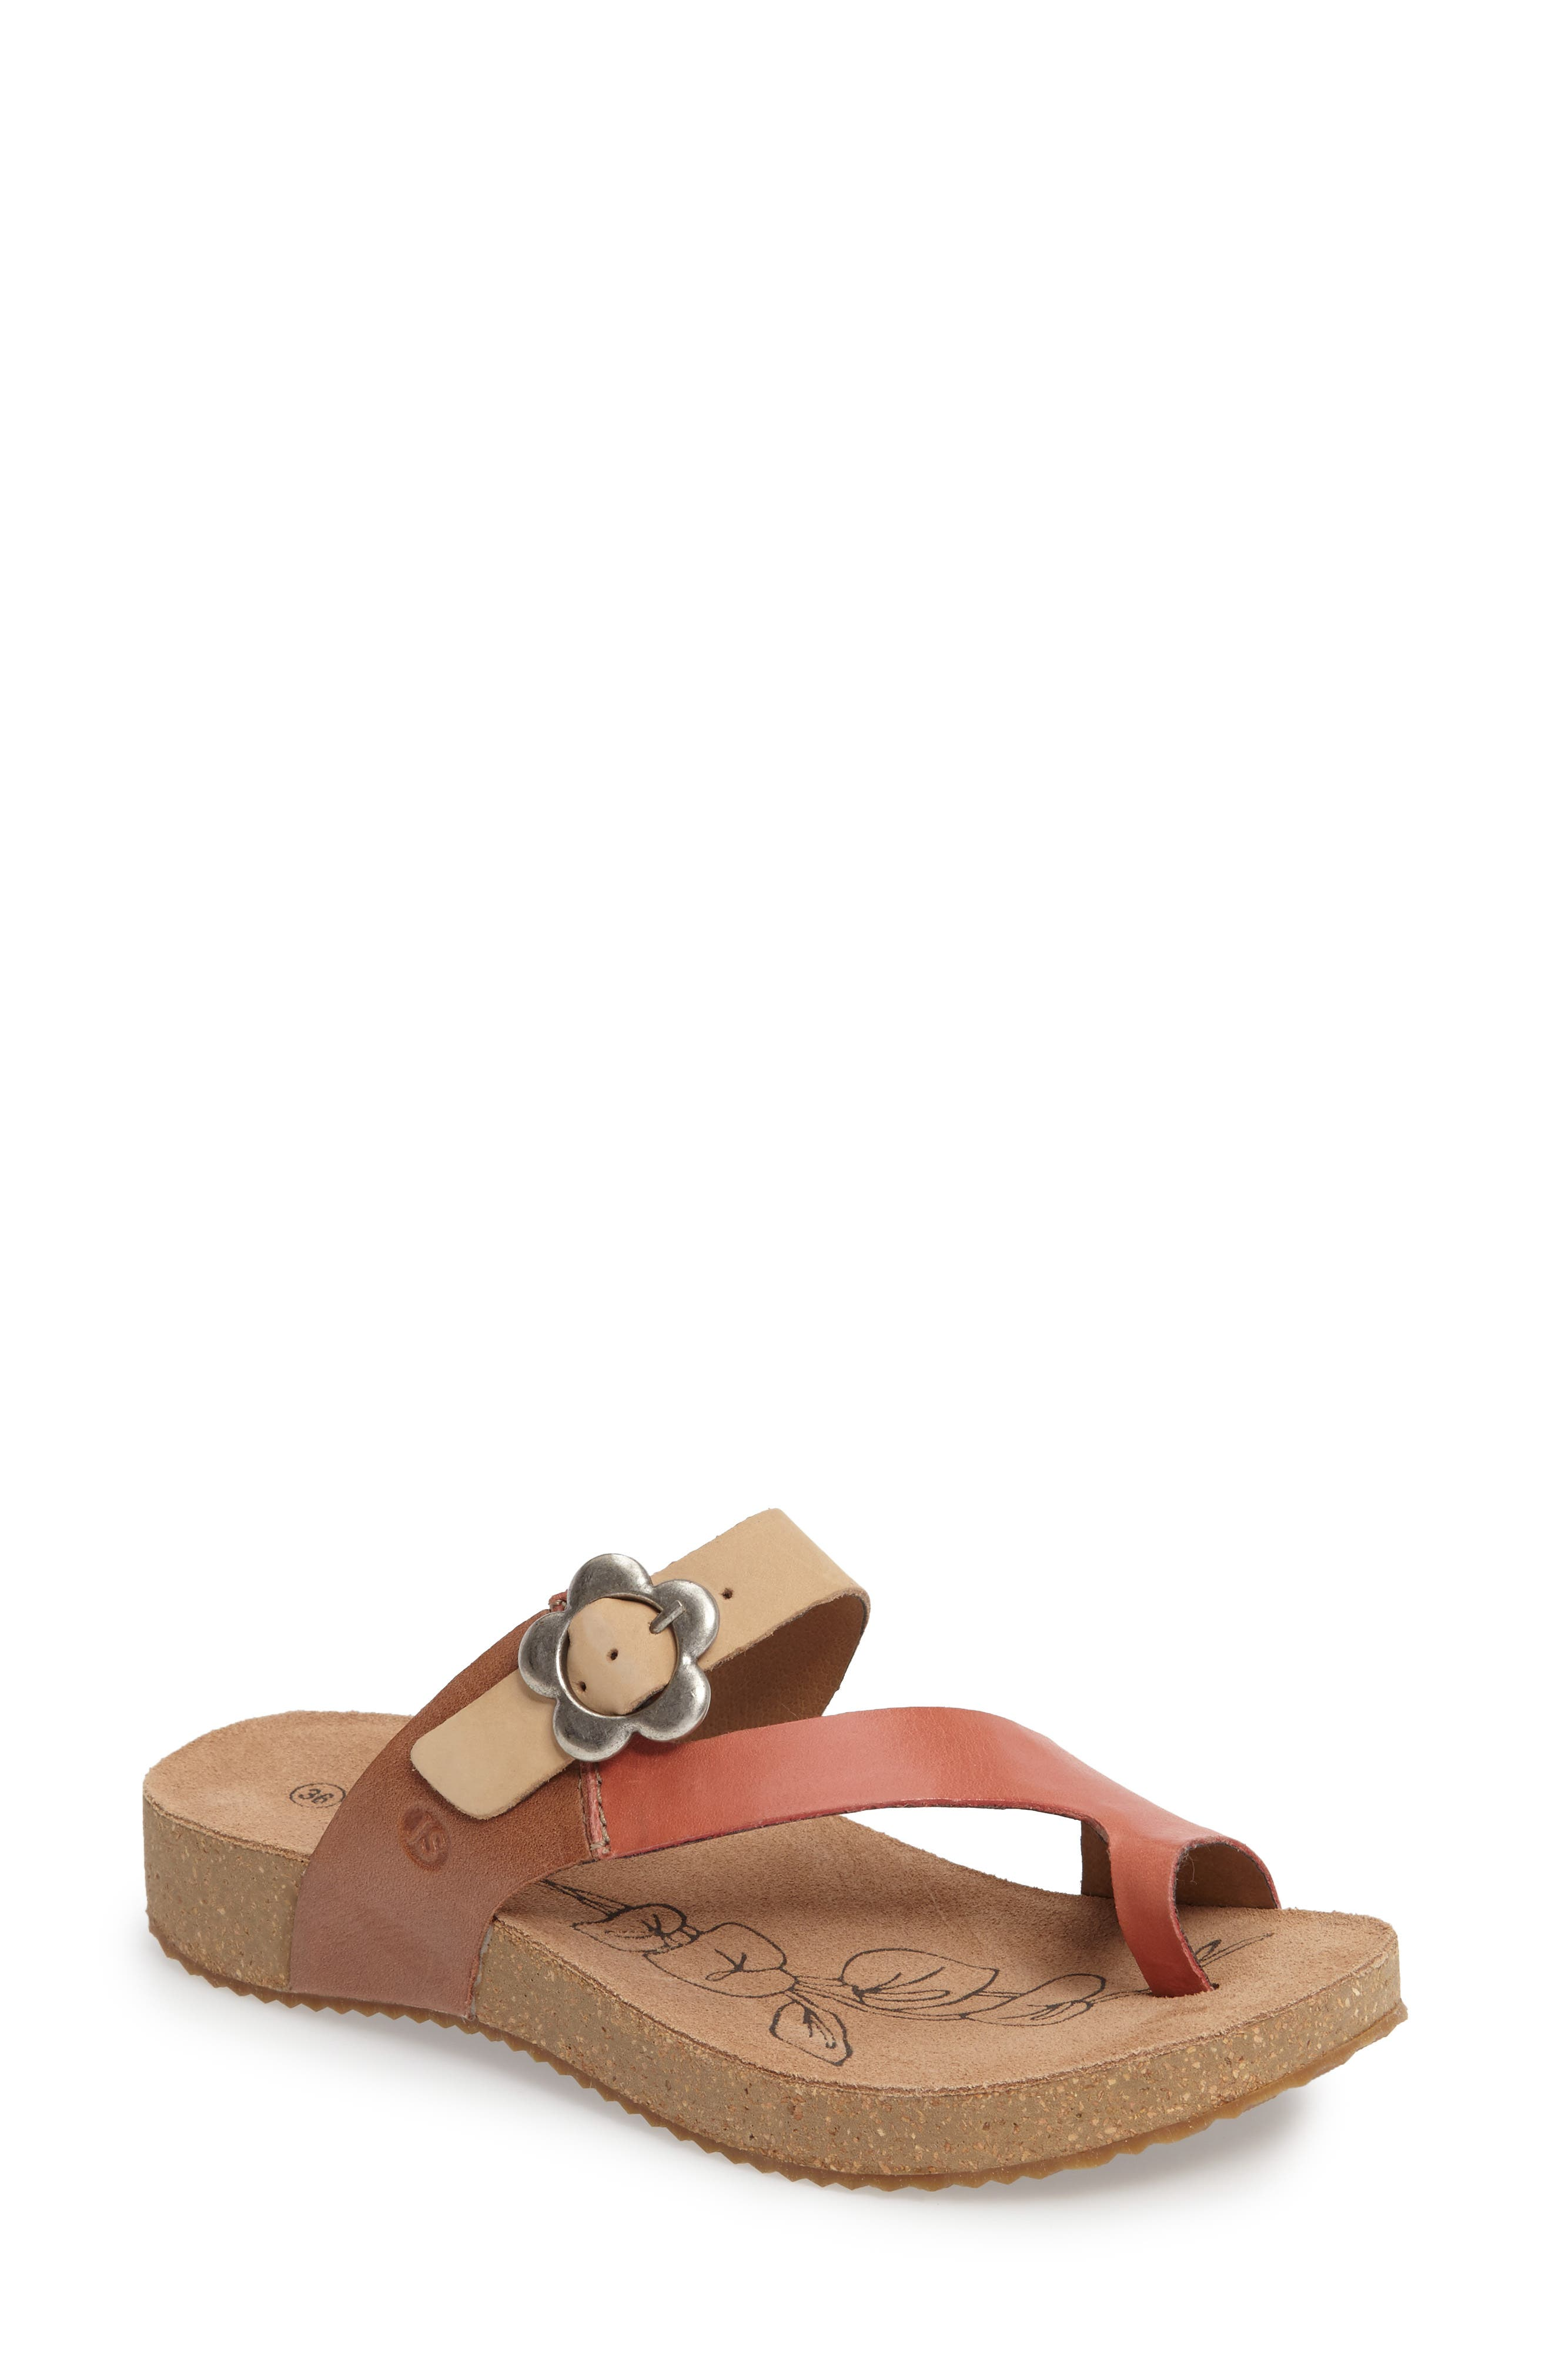 Tonga 23 Sandal,                         Main,                         color, KORALLE MULTI LEATHER